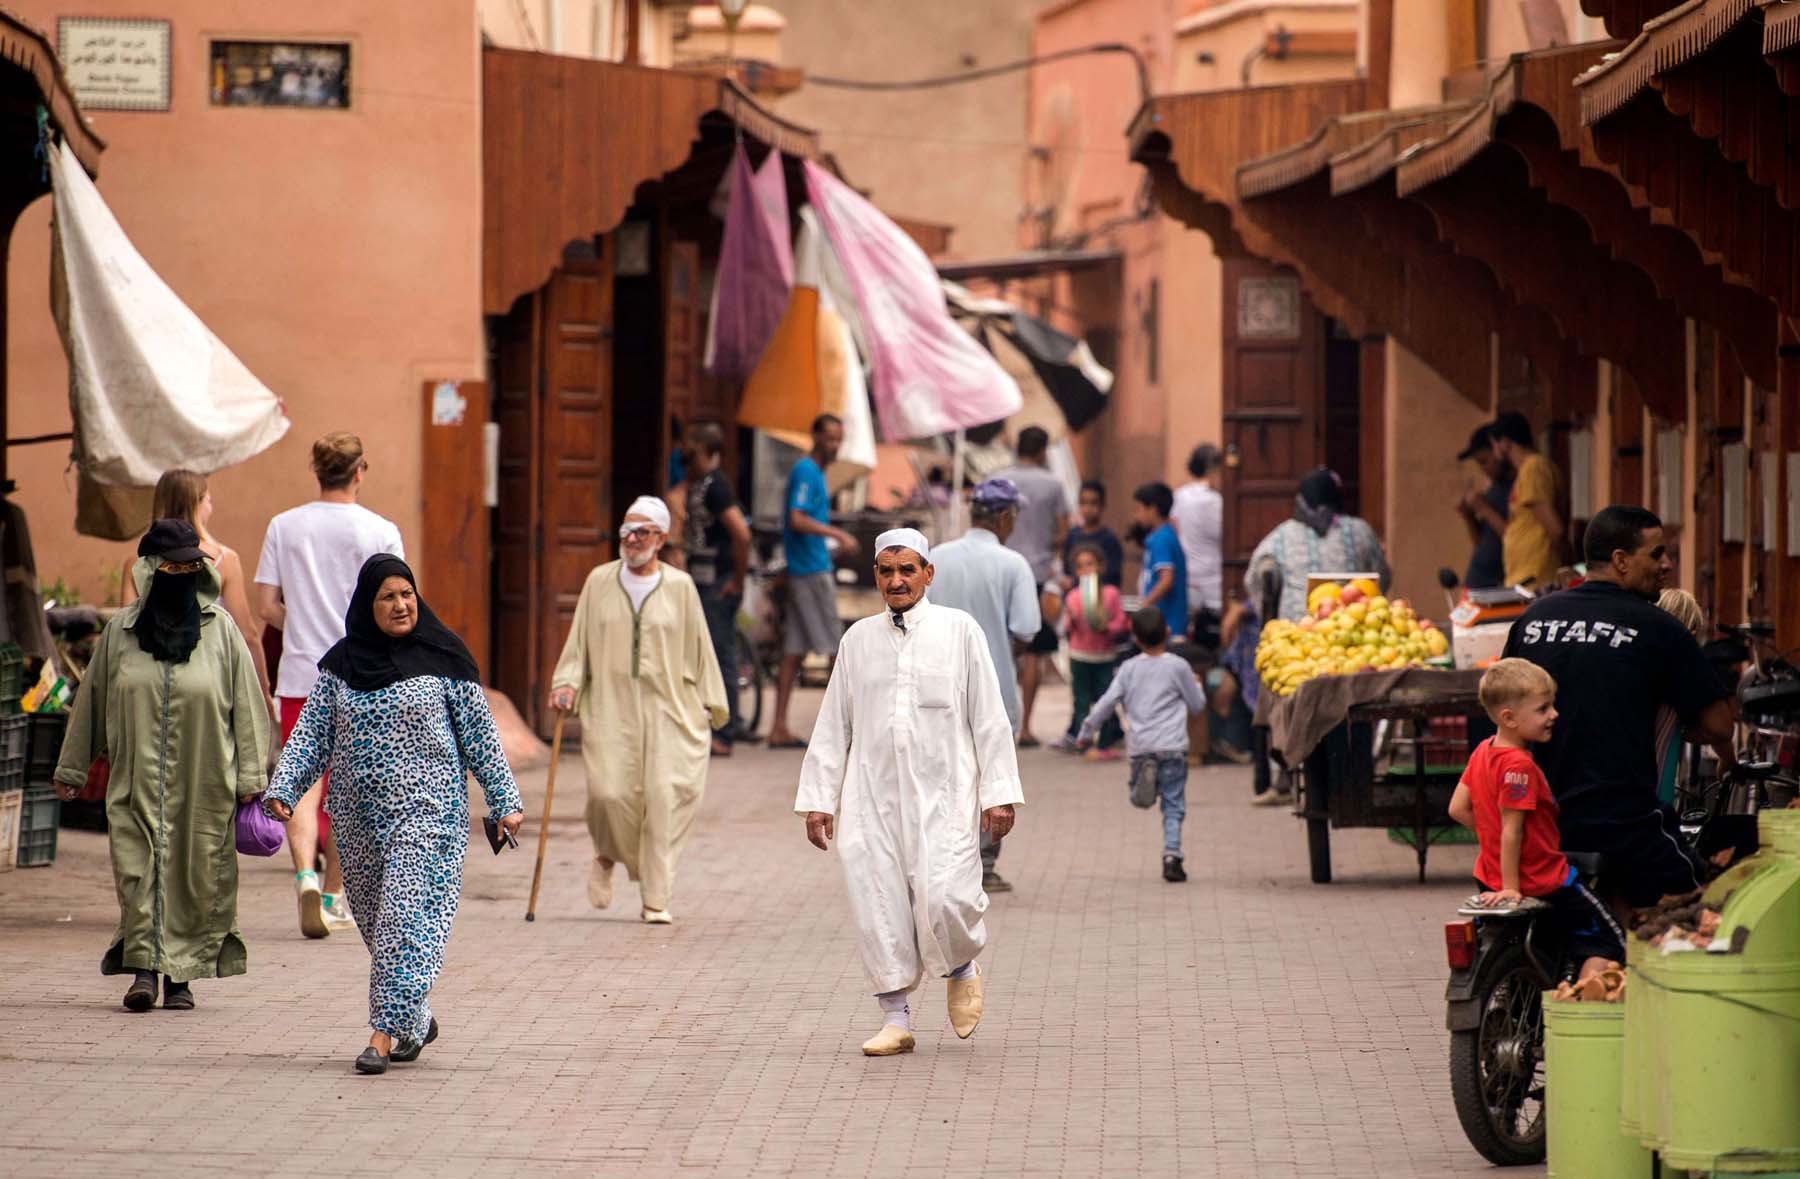 A view of a street in the Mellah Jewish quarter of the Old Medina in Marrakech. (AFP)